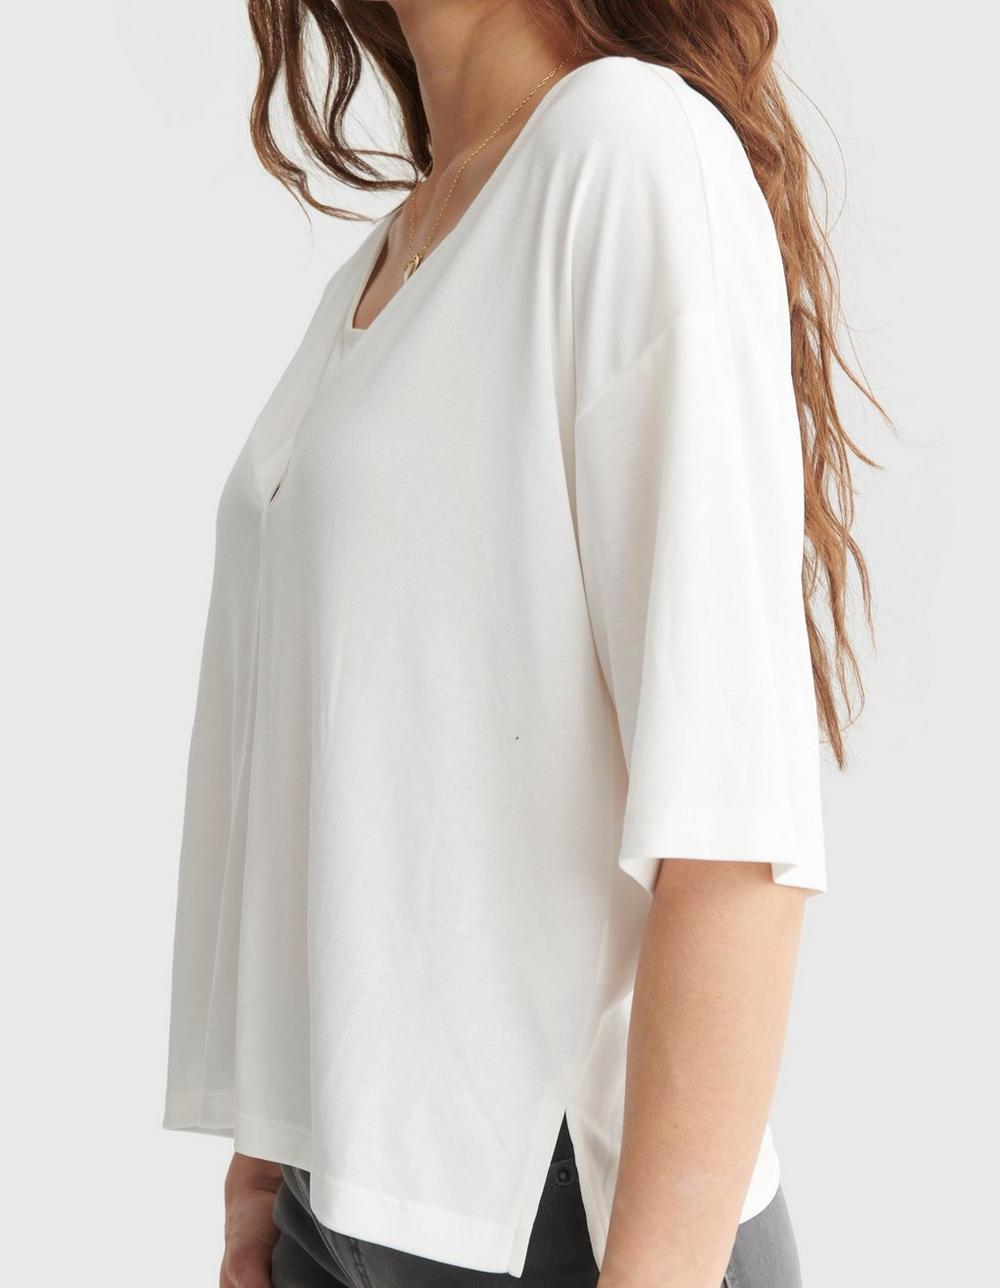 RELAXED-FIT V-NECK KNIT TOP, image 4